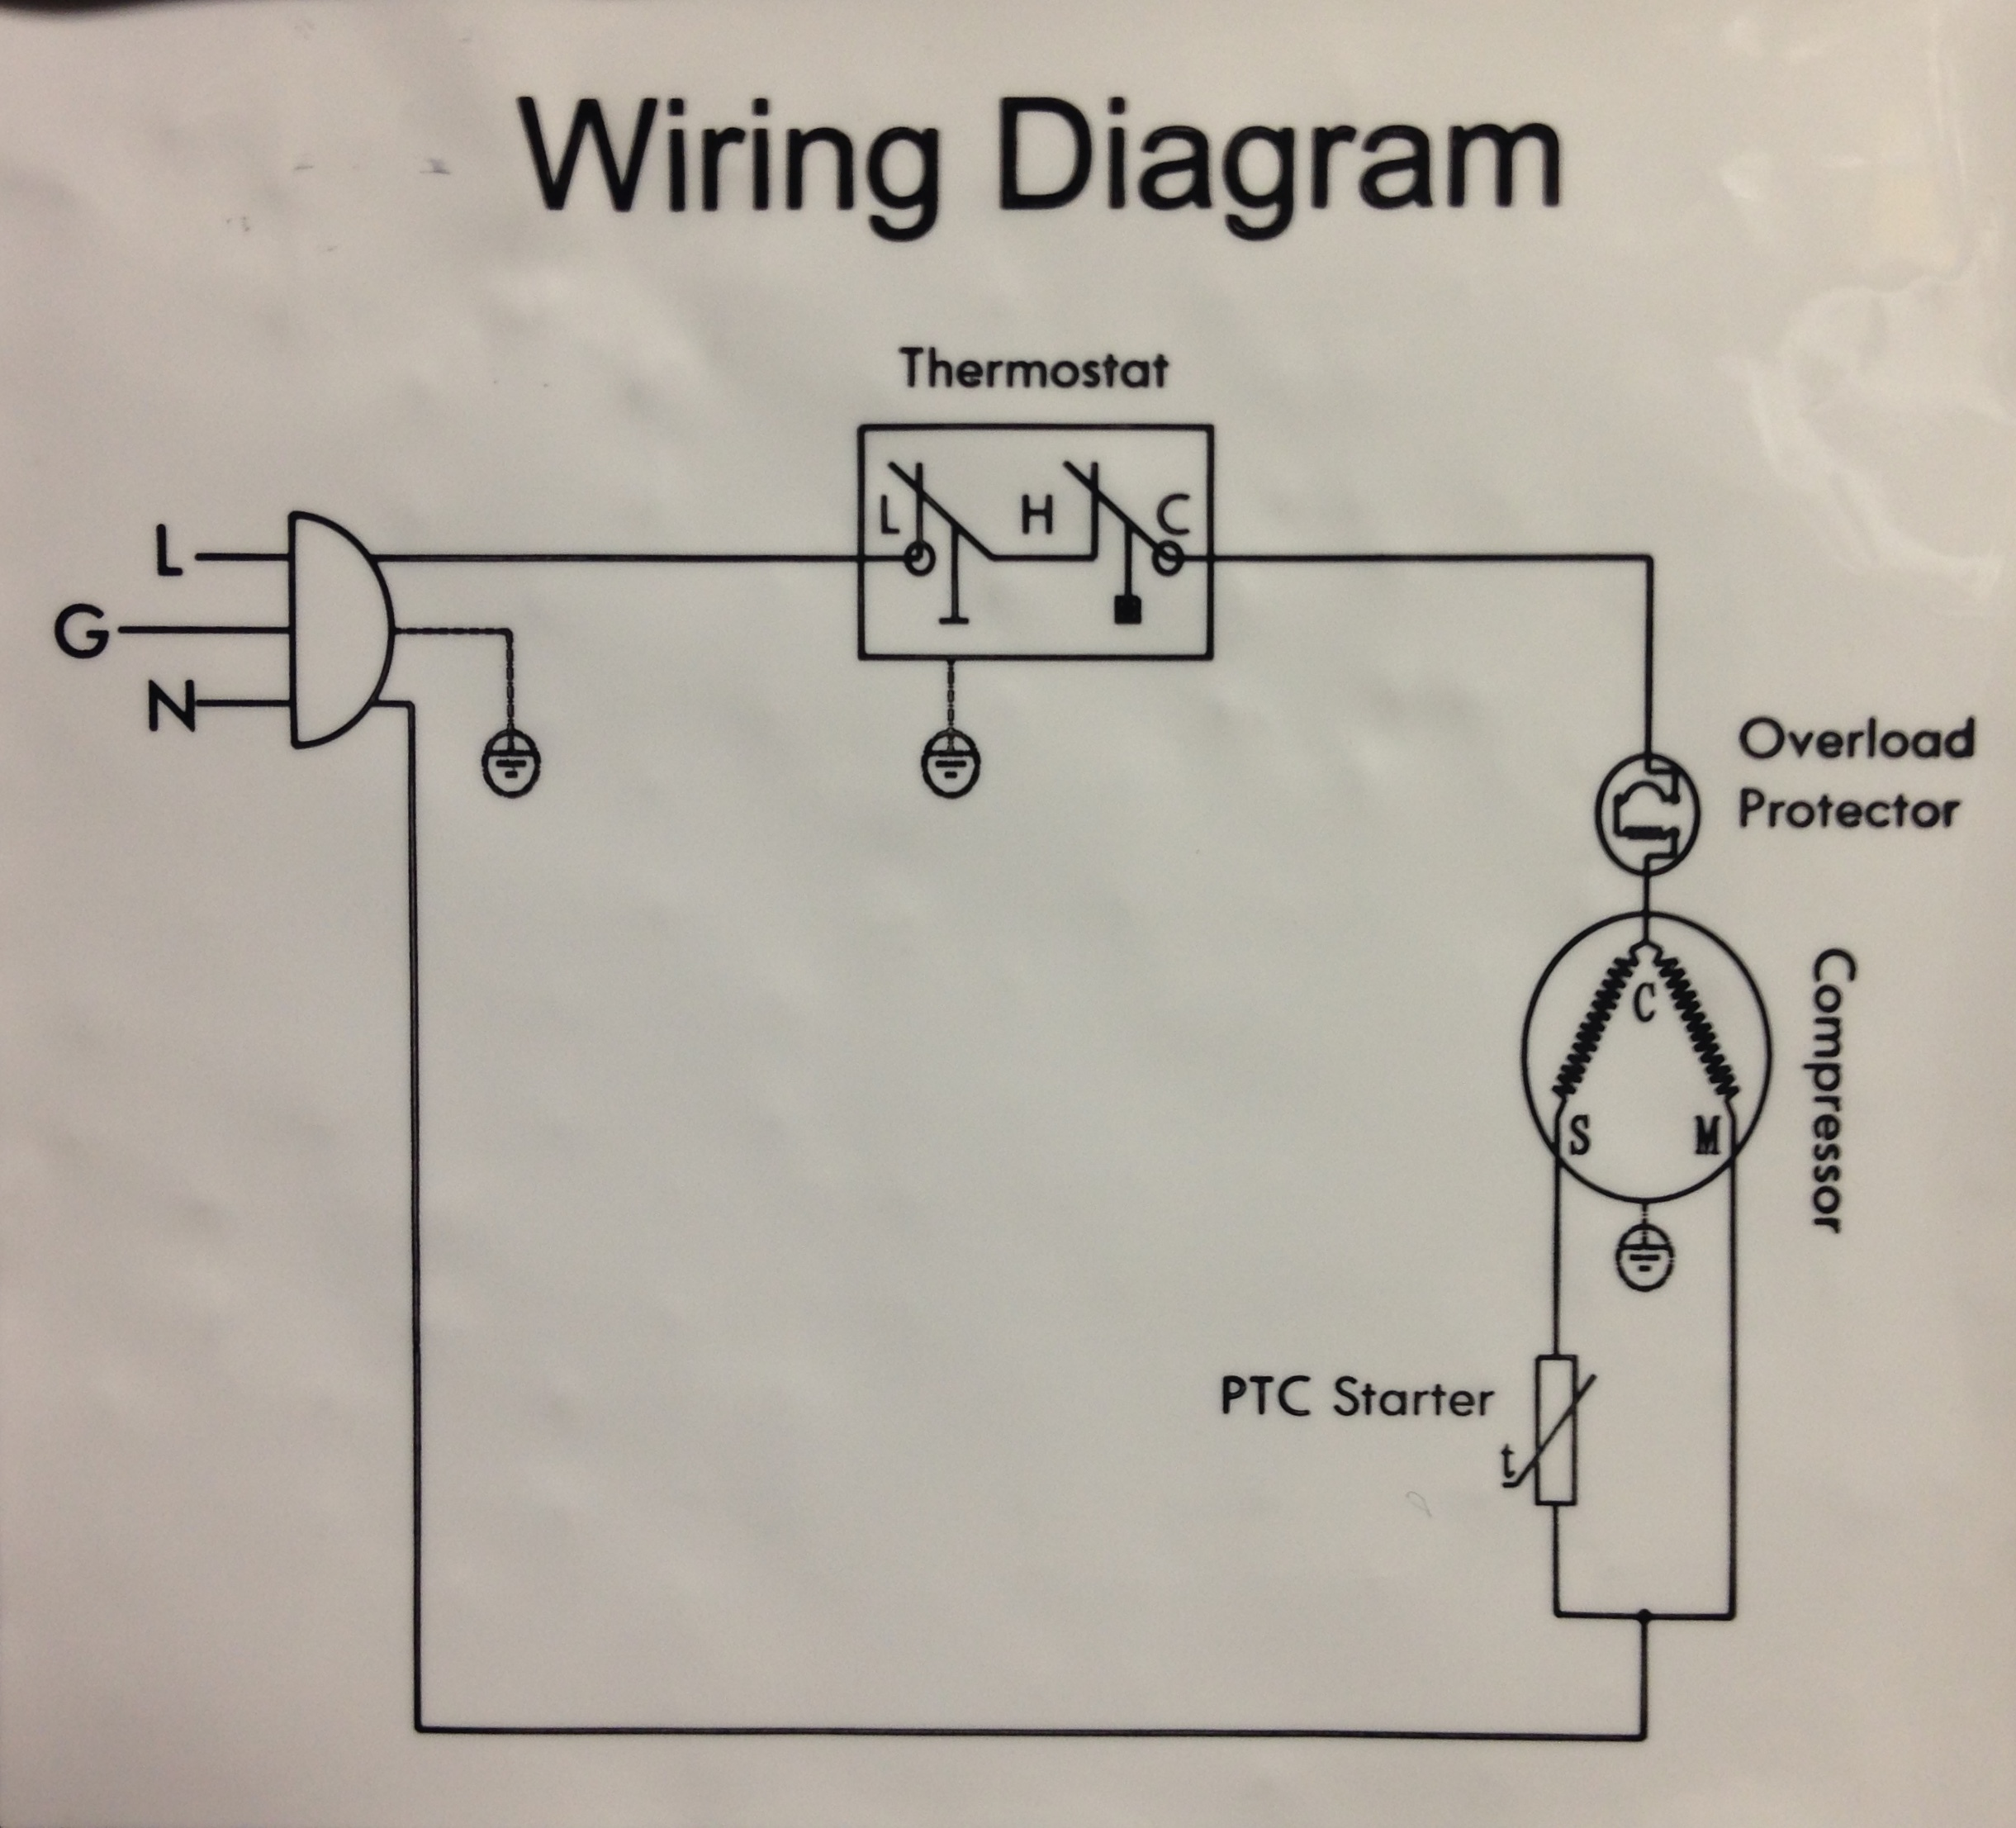 Freezer Thermostat Wire Diagram 4 - Product Wiring Diagrams •